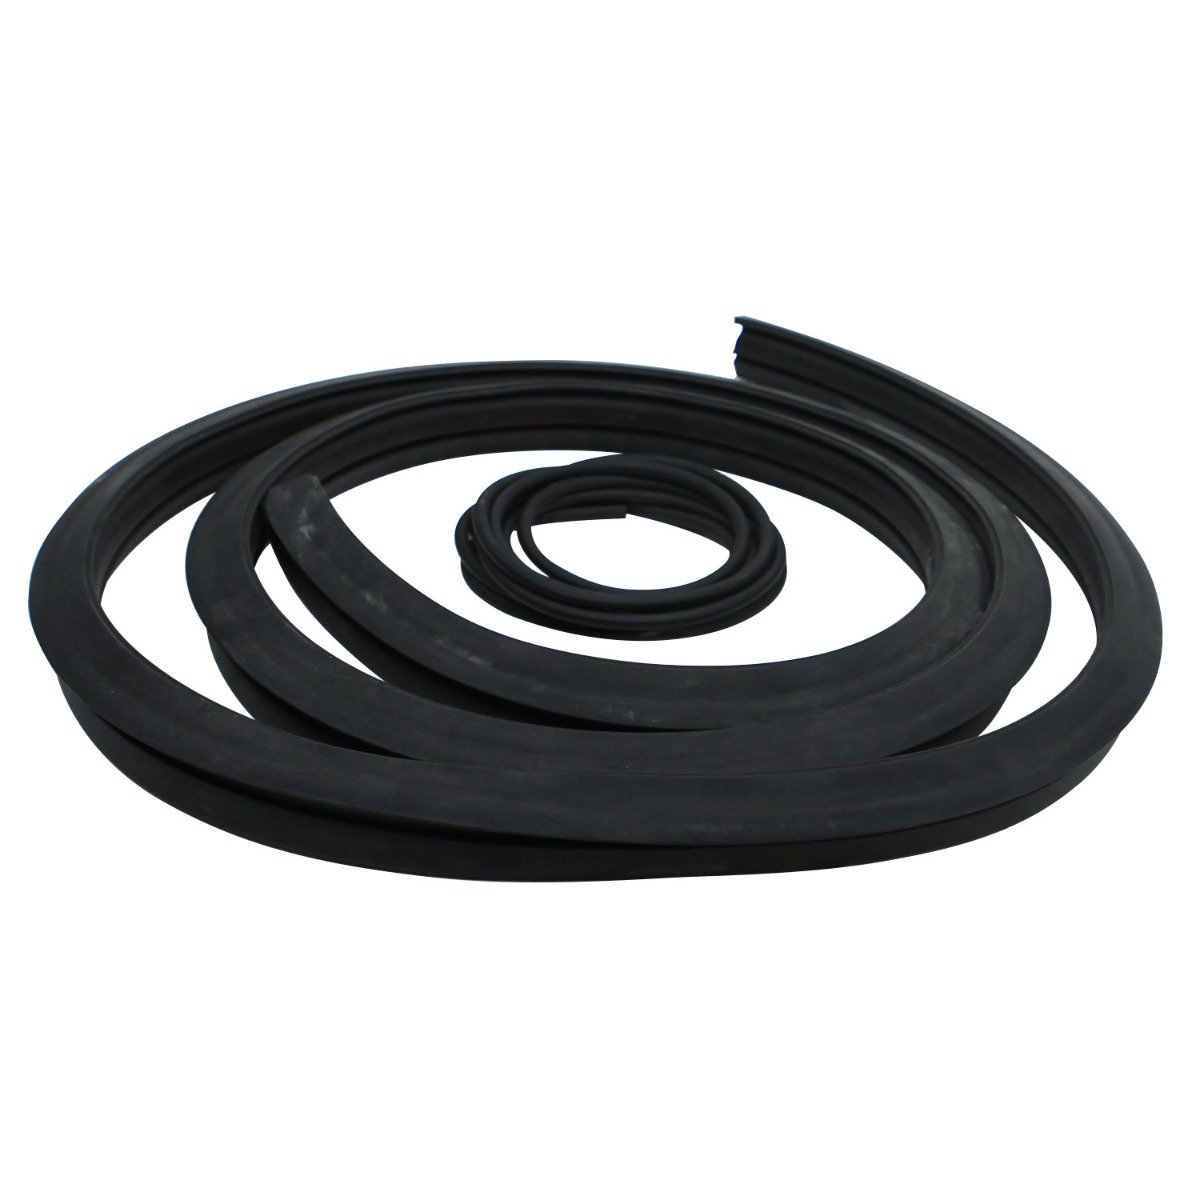 Rubber Seal and Cord 6665568 Compatible with Bobcat Skid Steer Loader 450 453 463 540 542 543 553 641 642 643 645 653 741 742 743 751 753 763 773 843 853 863 864 873 883 953 963 7753